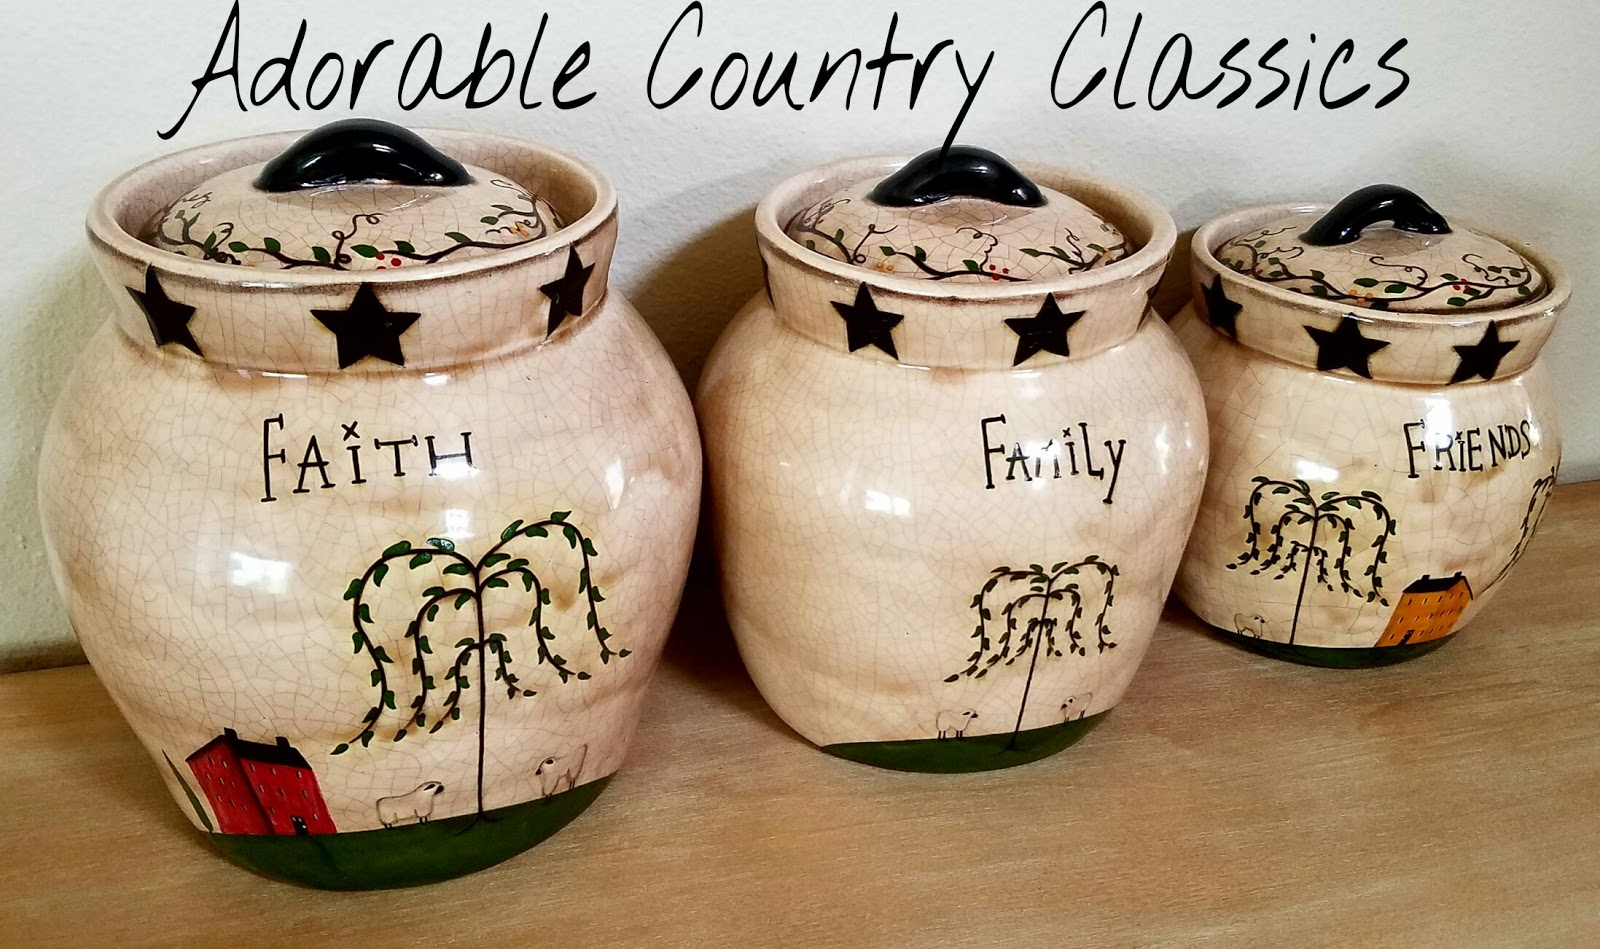 Adorable Country Classics Home Decor & Gifts: Primitive ...